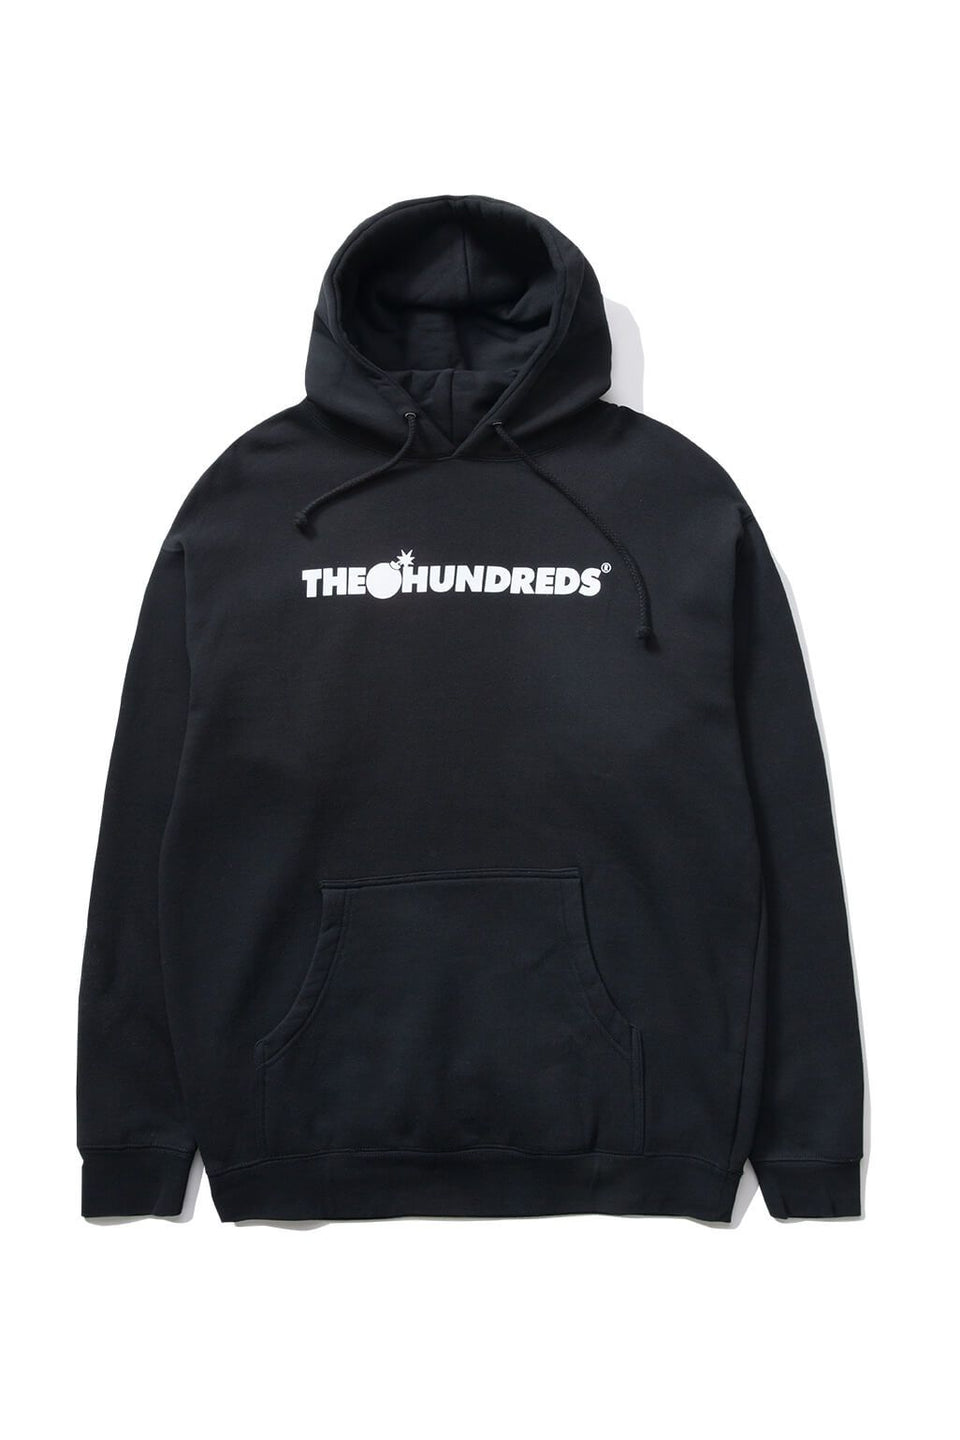 The Hundreds Forever Bar Pullover Hoodie Black Front